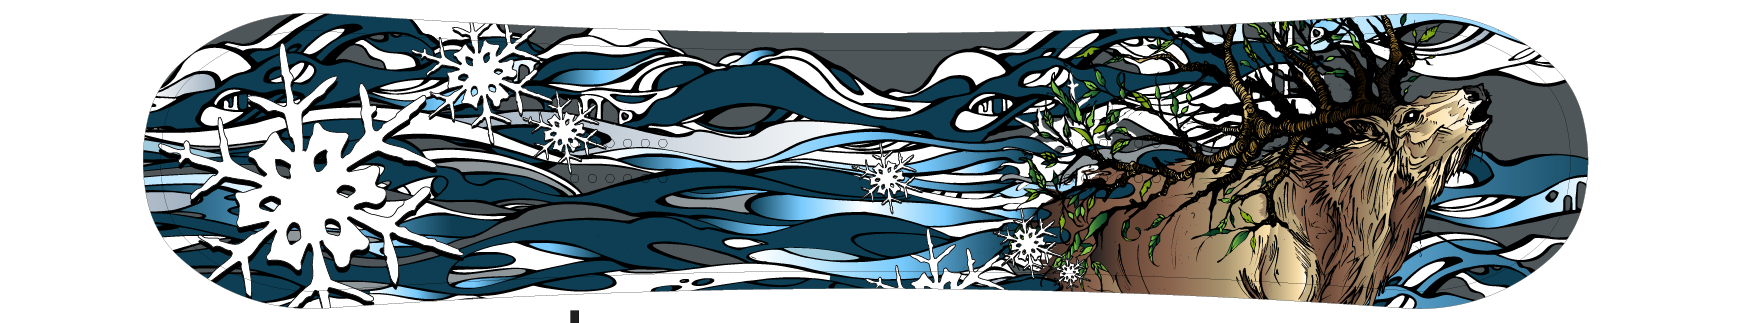 Artwork for Venture Snowboards